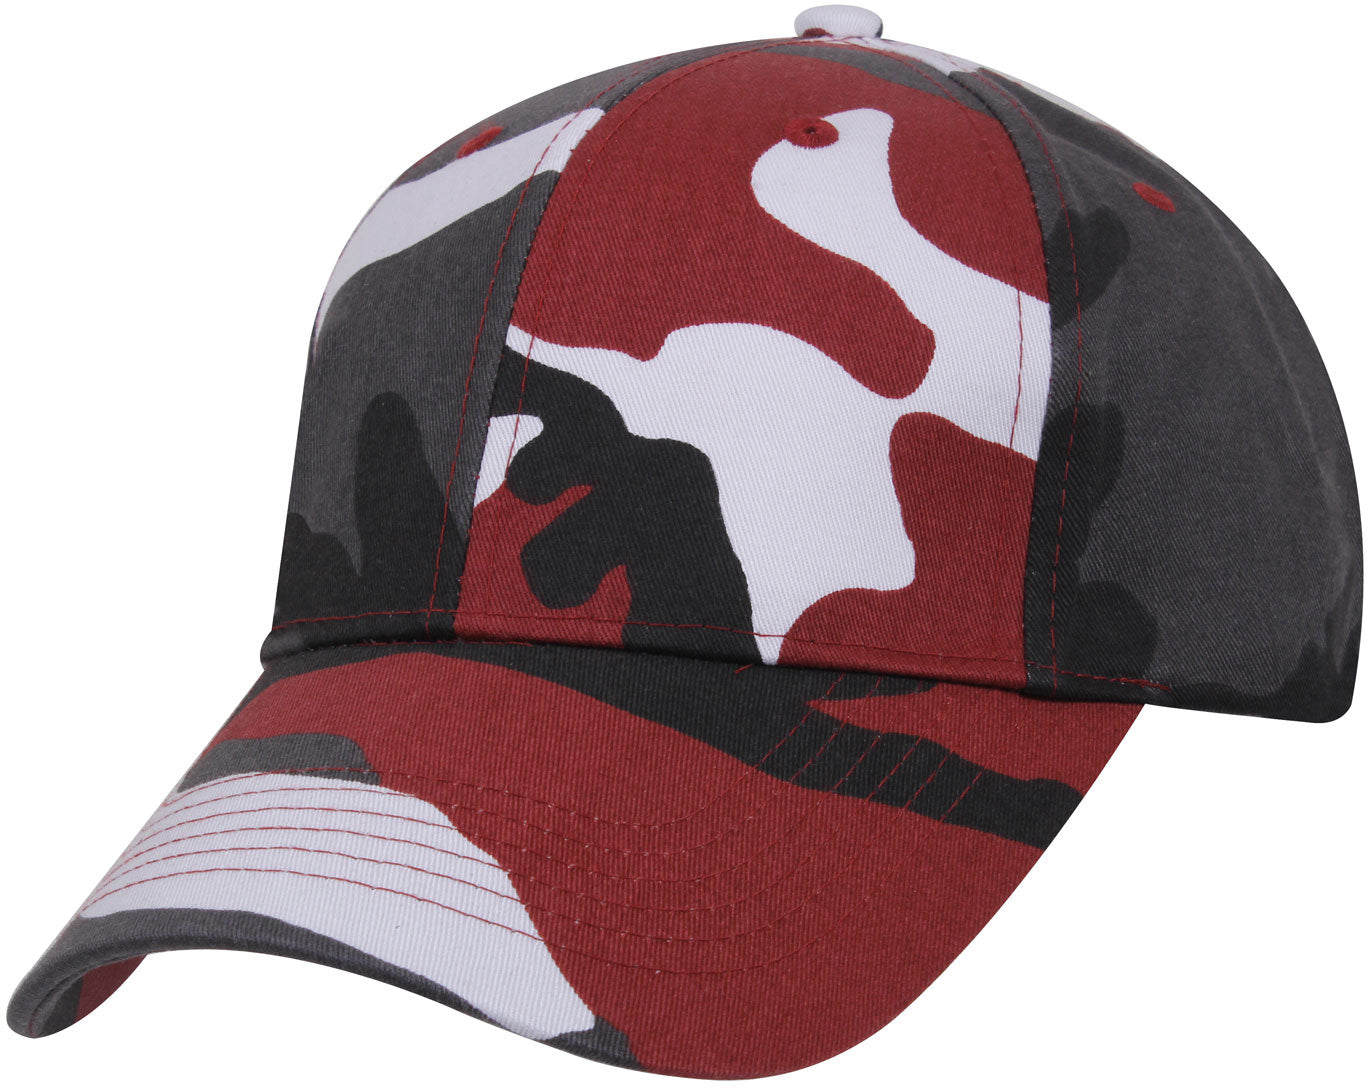 Red Camouflage - Military Low Profile Adjustabe Baseball Cap